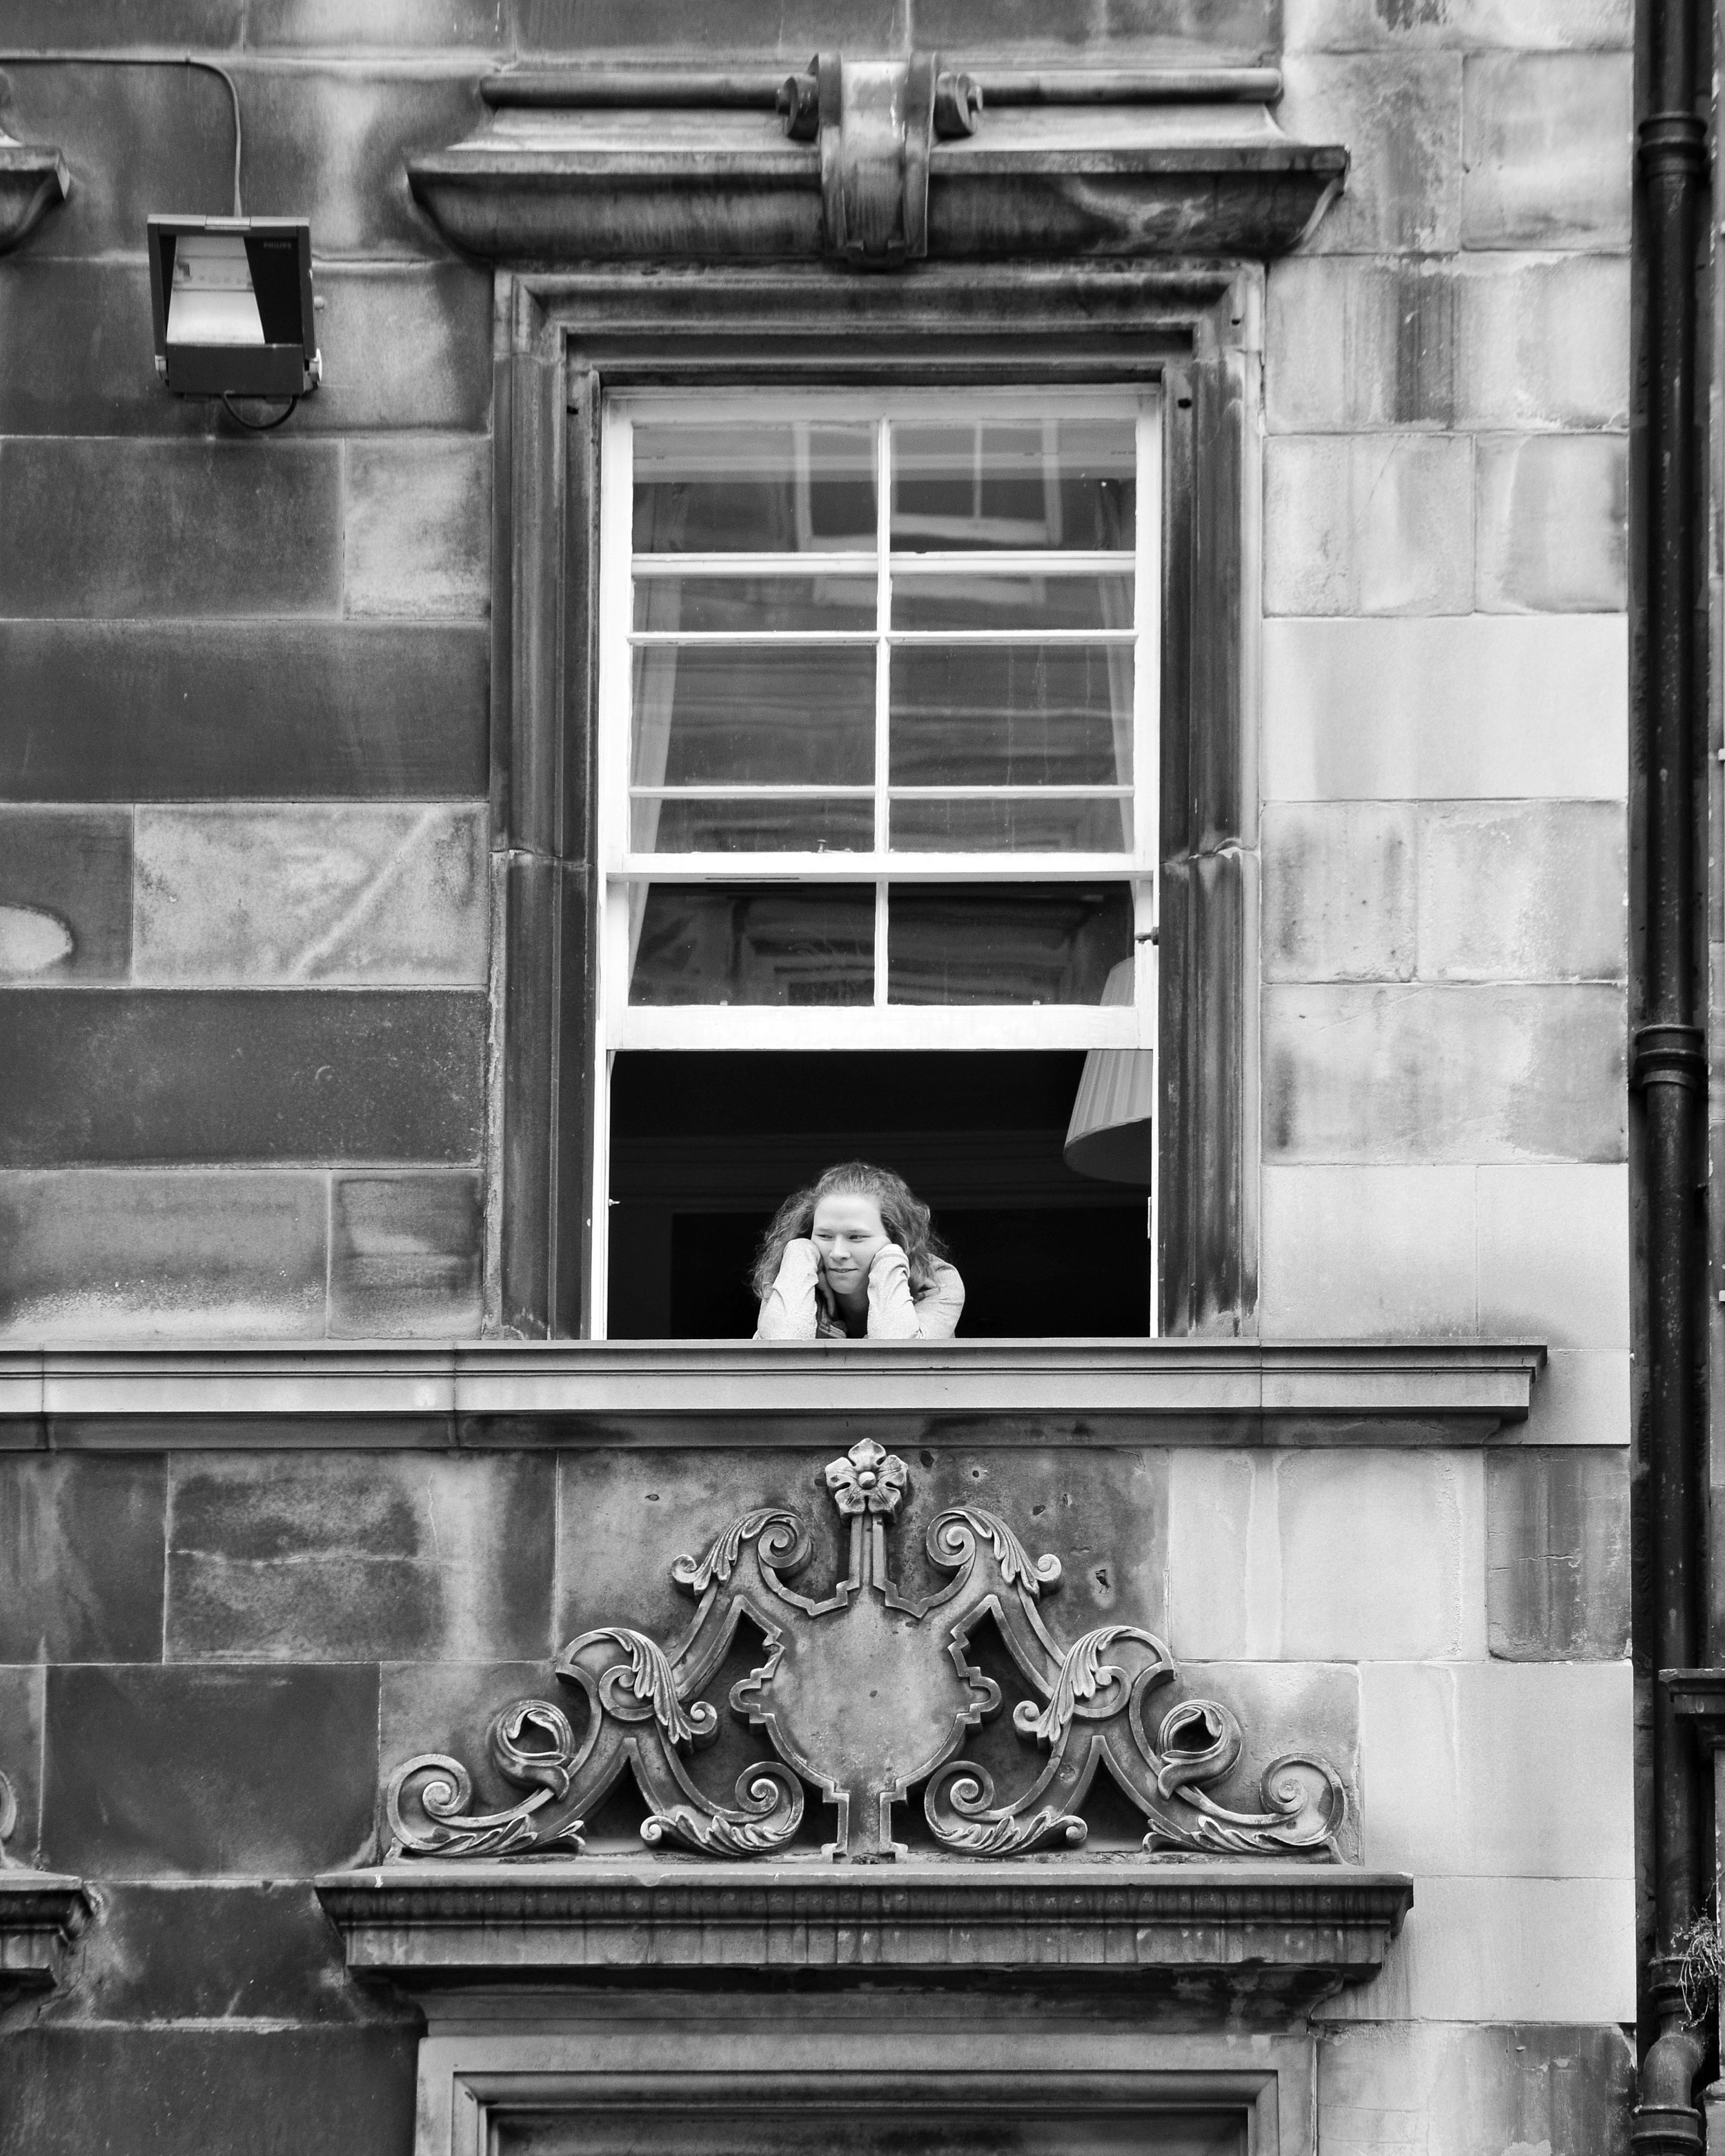 The Best Seat In The House (The Royal Mile, Edinburgh, Scotland)